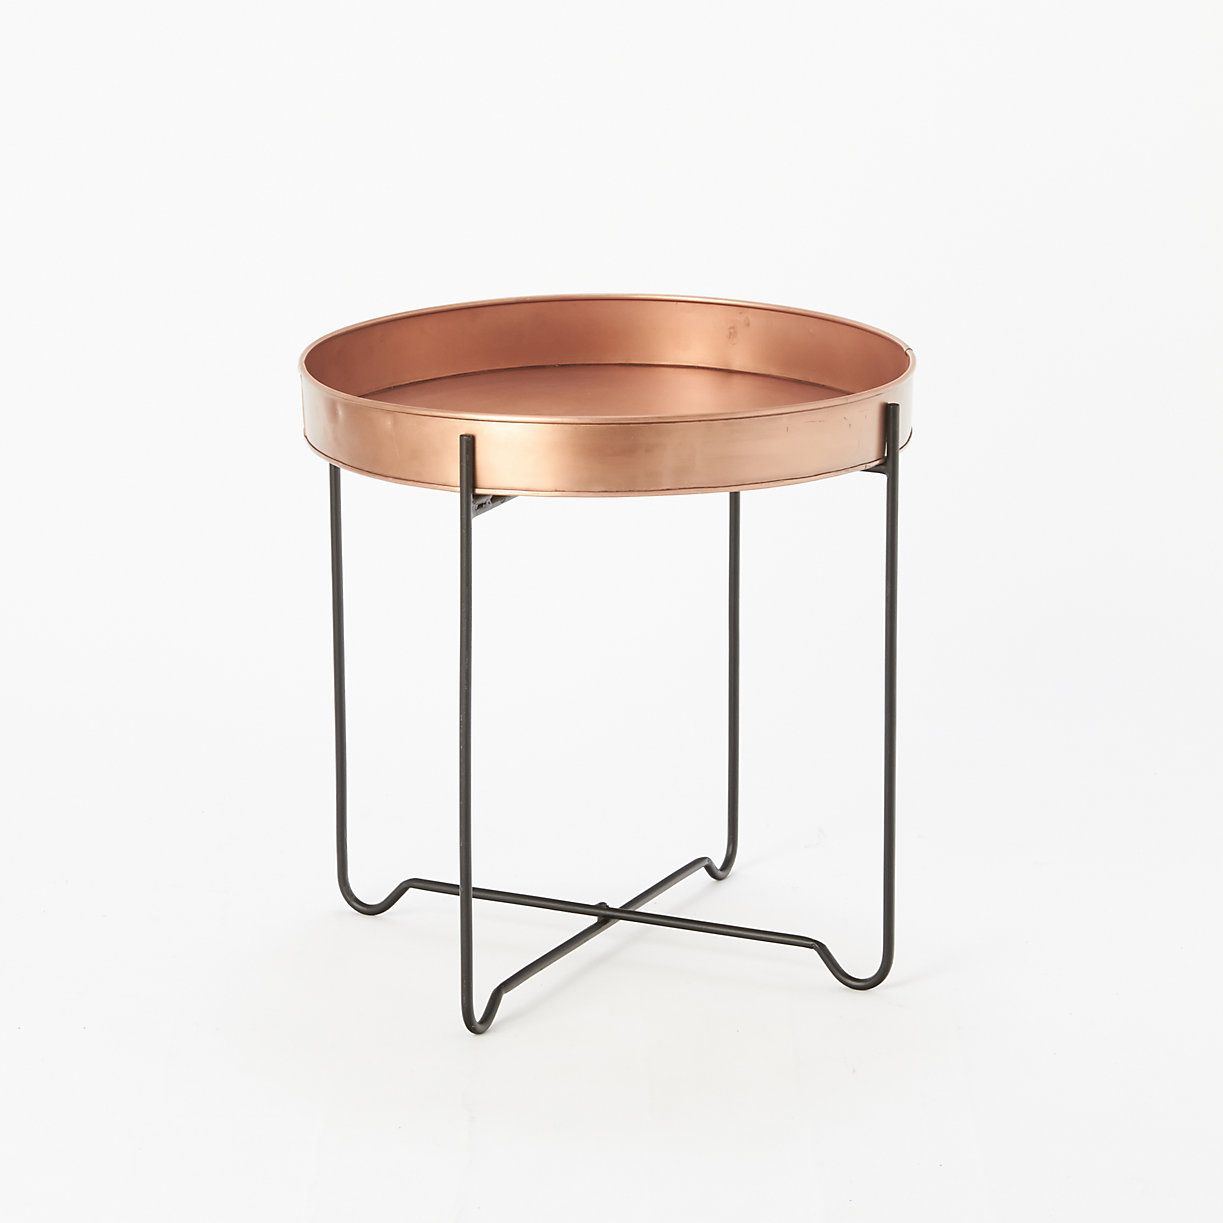 Wonderful A Sleek, Iron Frame Pairs With Our Classic Copper Tray From Habit + Form To